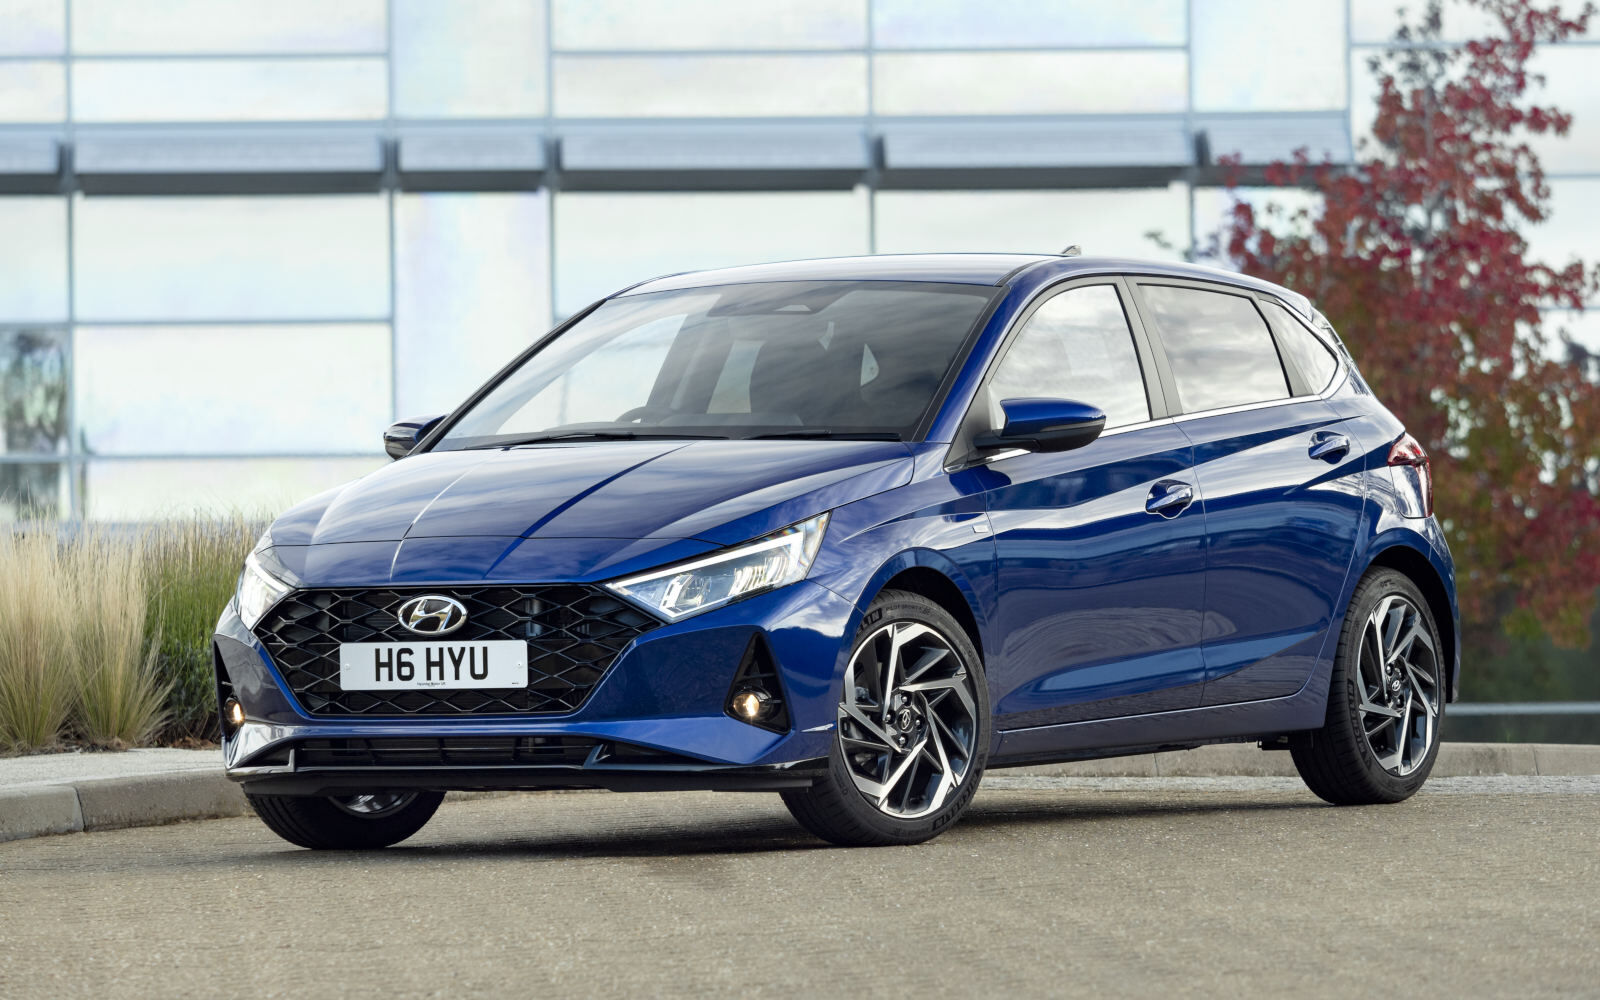 2020 Hyundai I20 Hatchback Gets A Turbo Petrol Hybrid Engine Shifting Gears